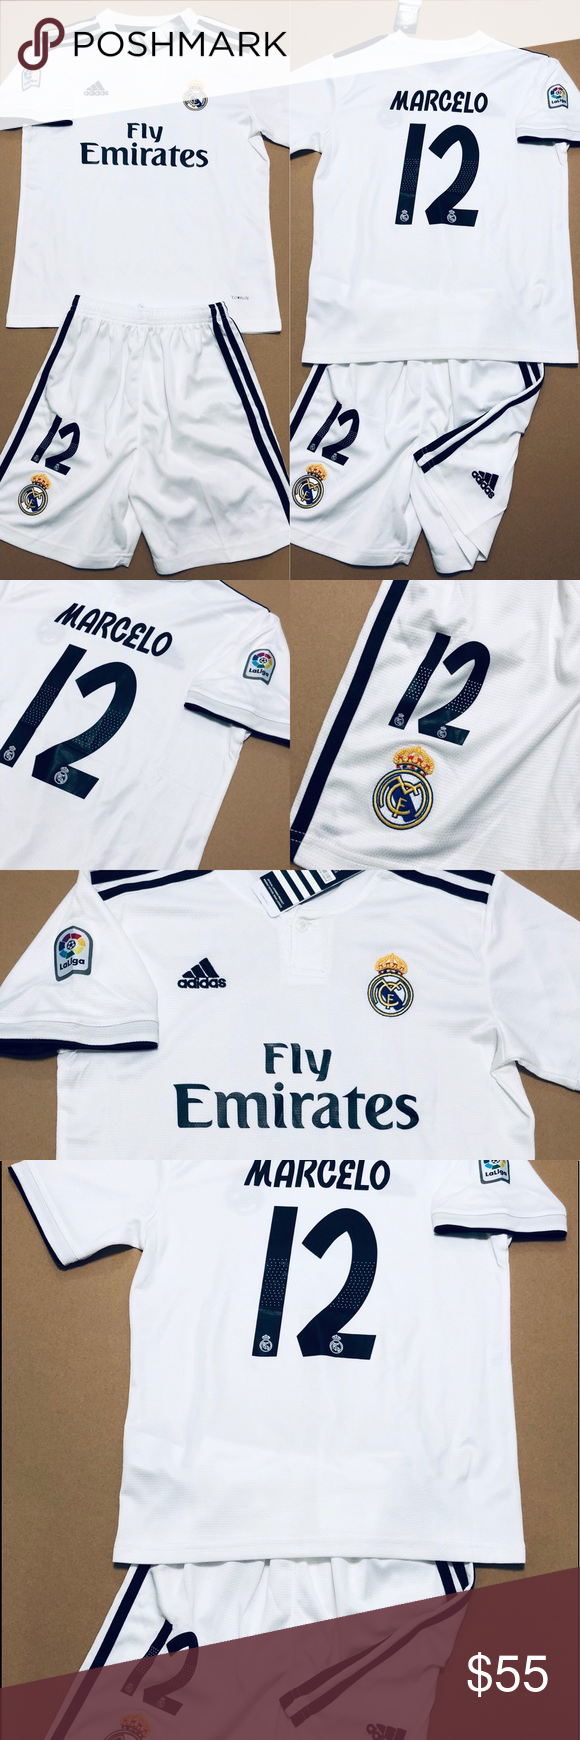 new concept e71d3 3603d ⚽️ Marcelo #12 Real Madrid Soccer Kids Kit Jersey 2018/19 ...